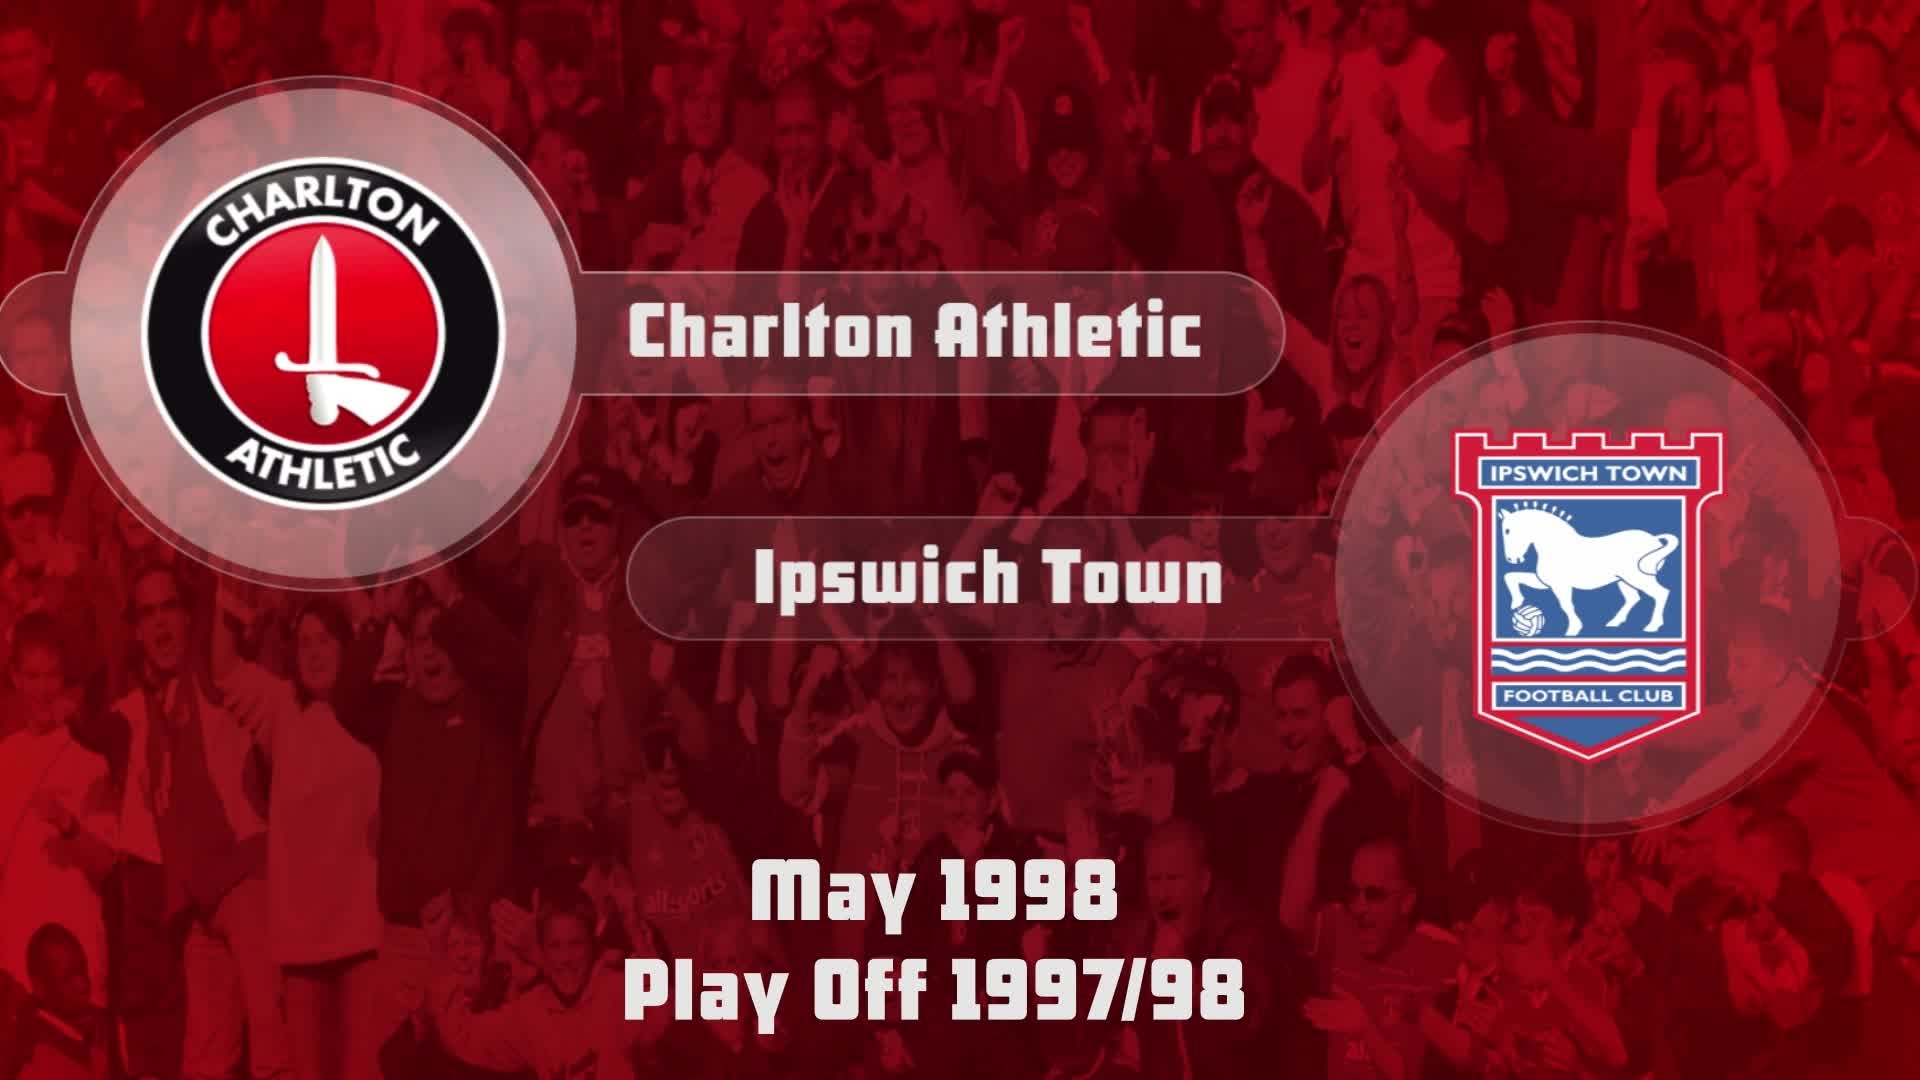 53 HIGHLIGHTS | Charlton 1 Ipswich 0 (Play-off semi final May 1998)